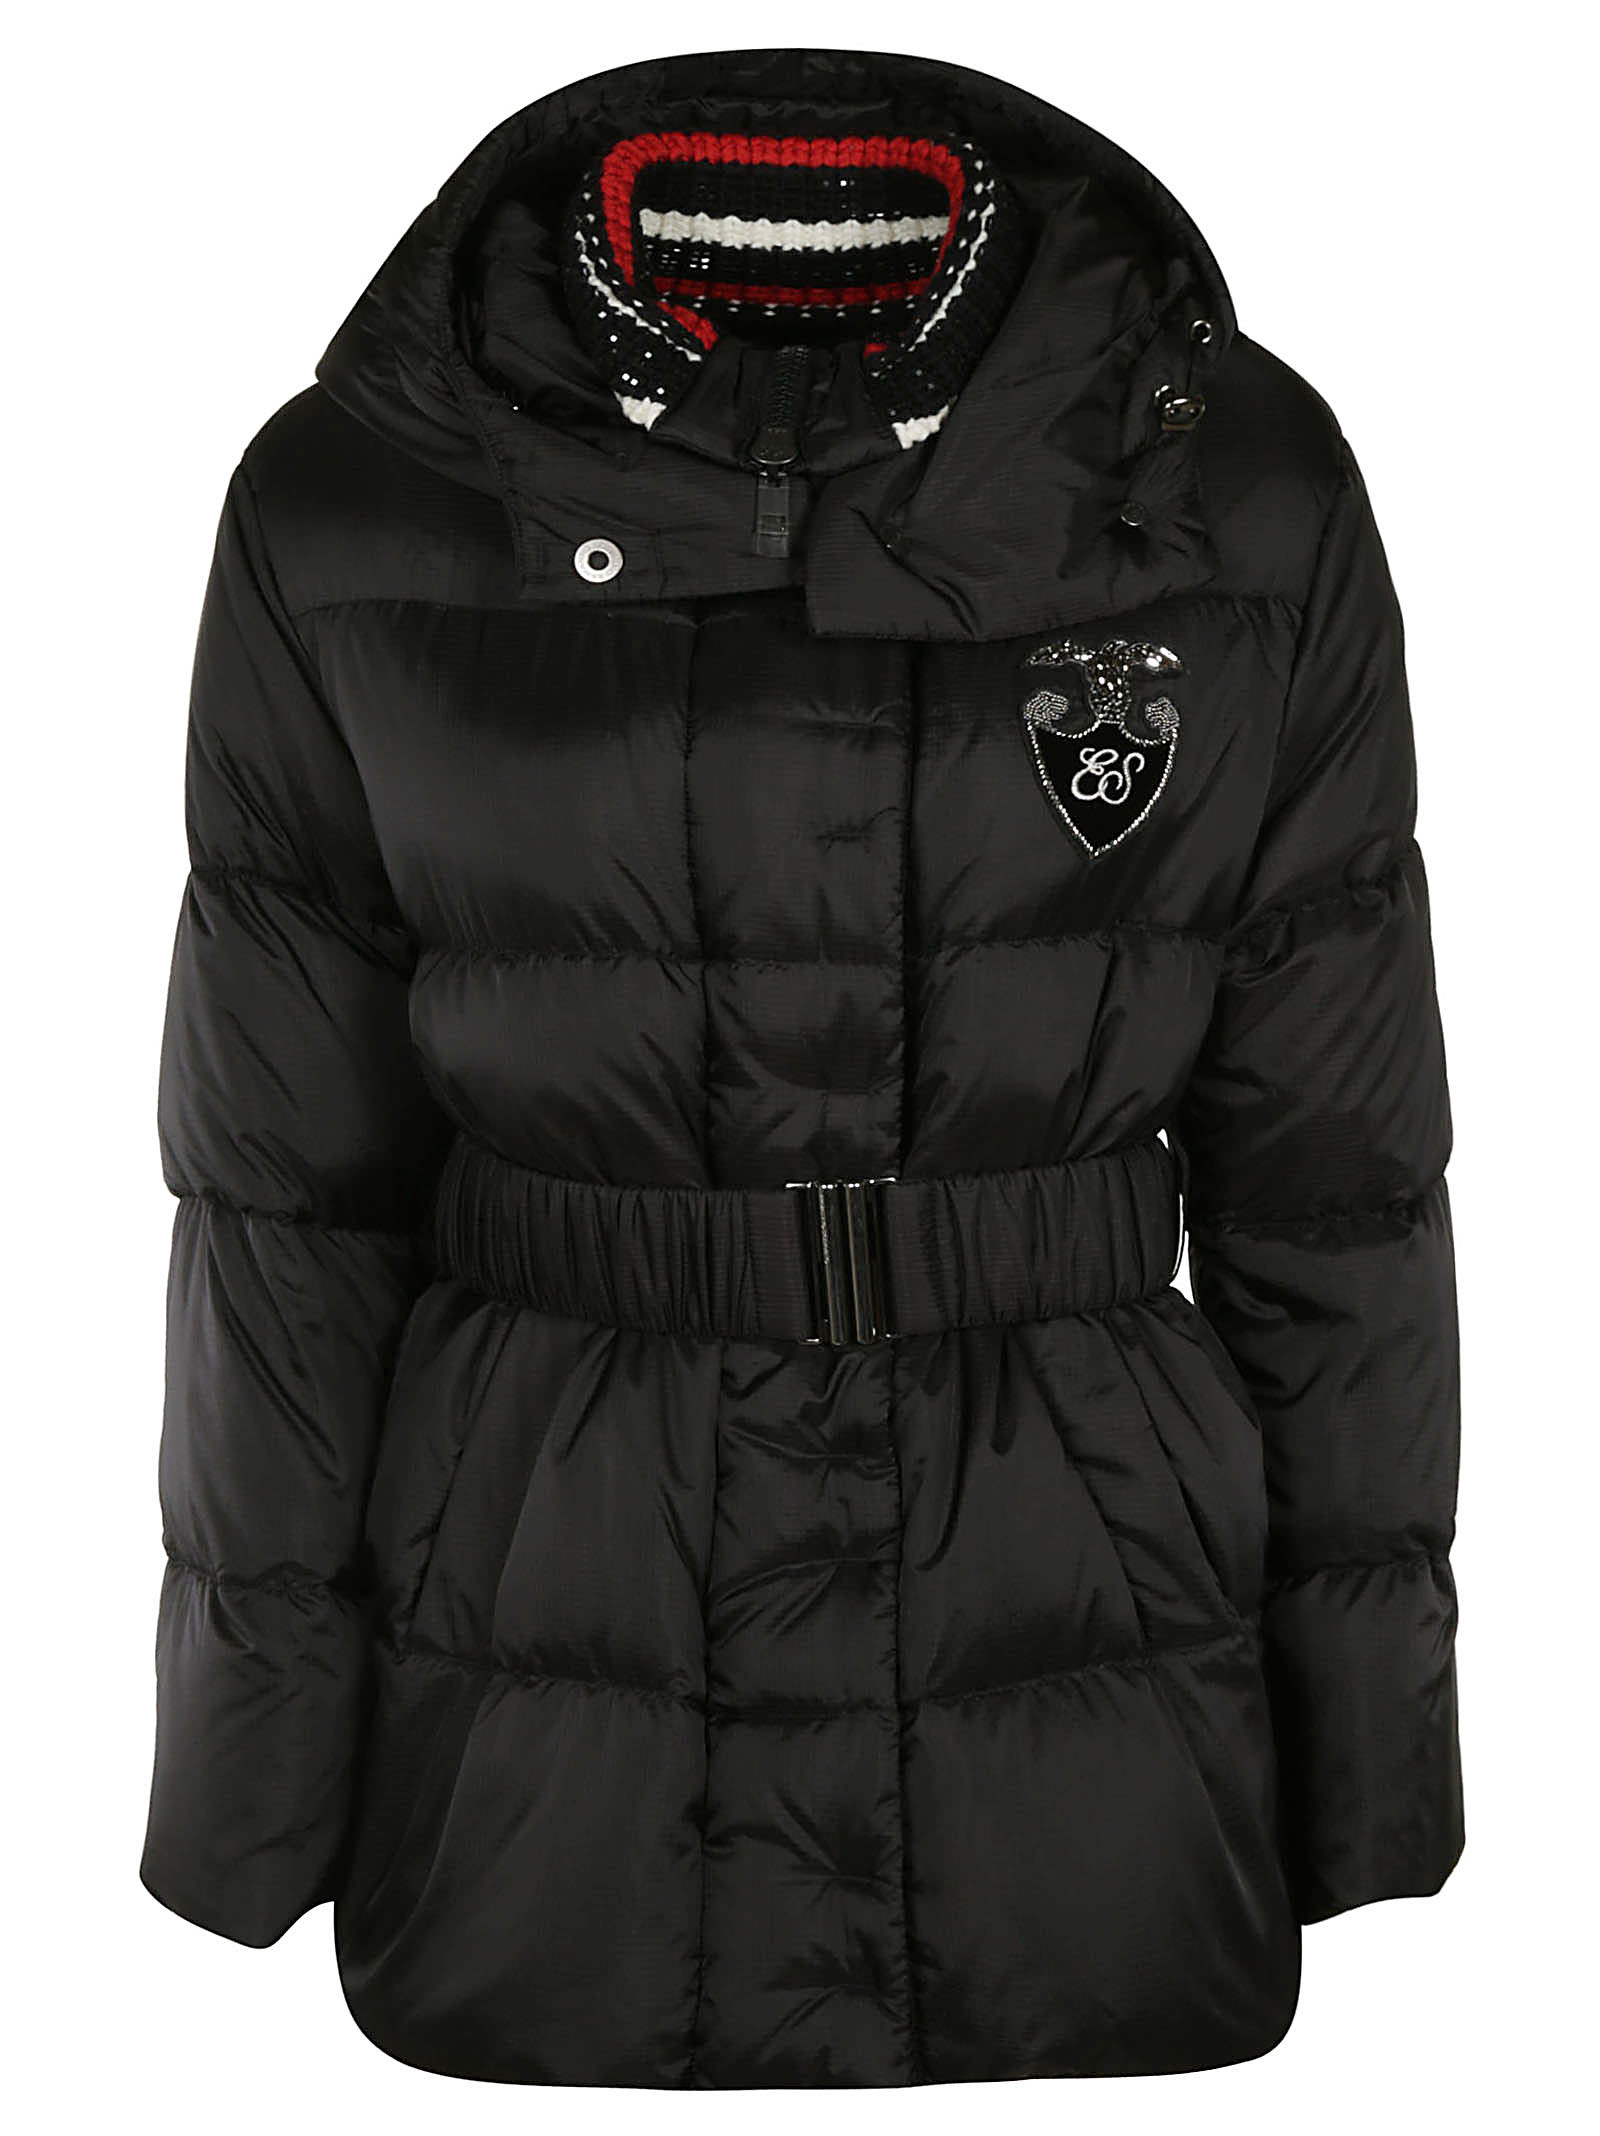 Ermanno Scervino Belted Waist Padded Jacket